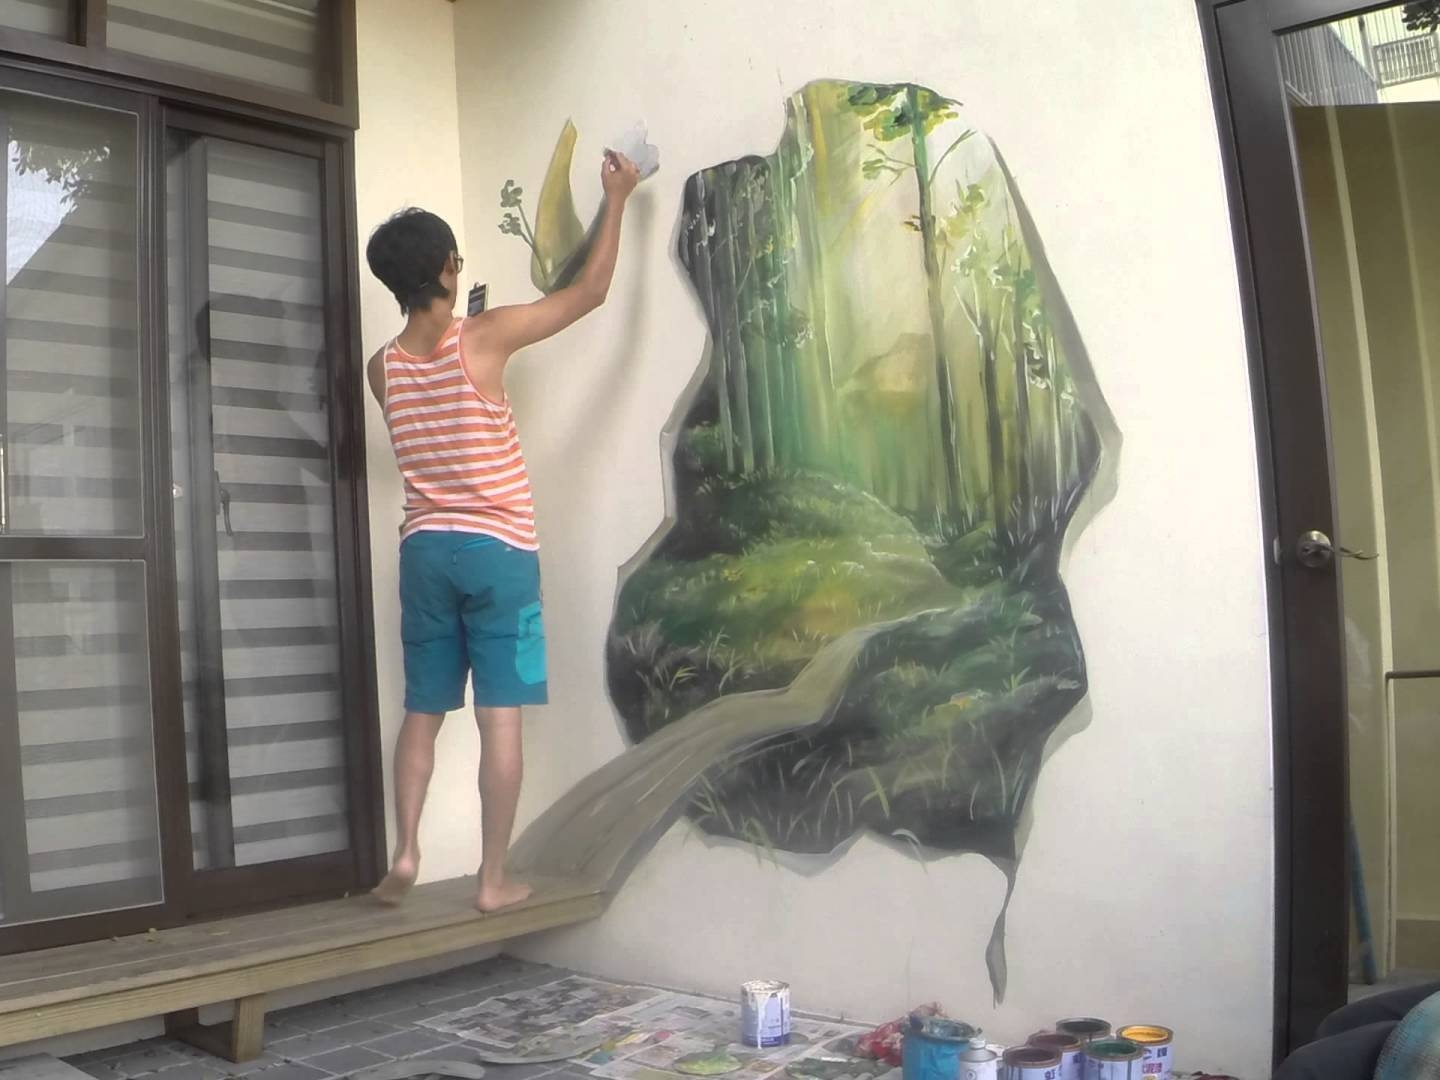 3d Artwork On Wall | Wallartideas Pertaining To 2018 3d Artwork On Wall (Gallery 1 of 20)